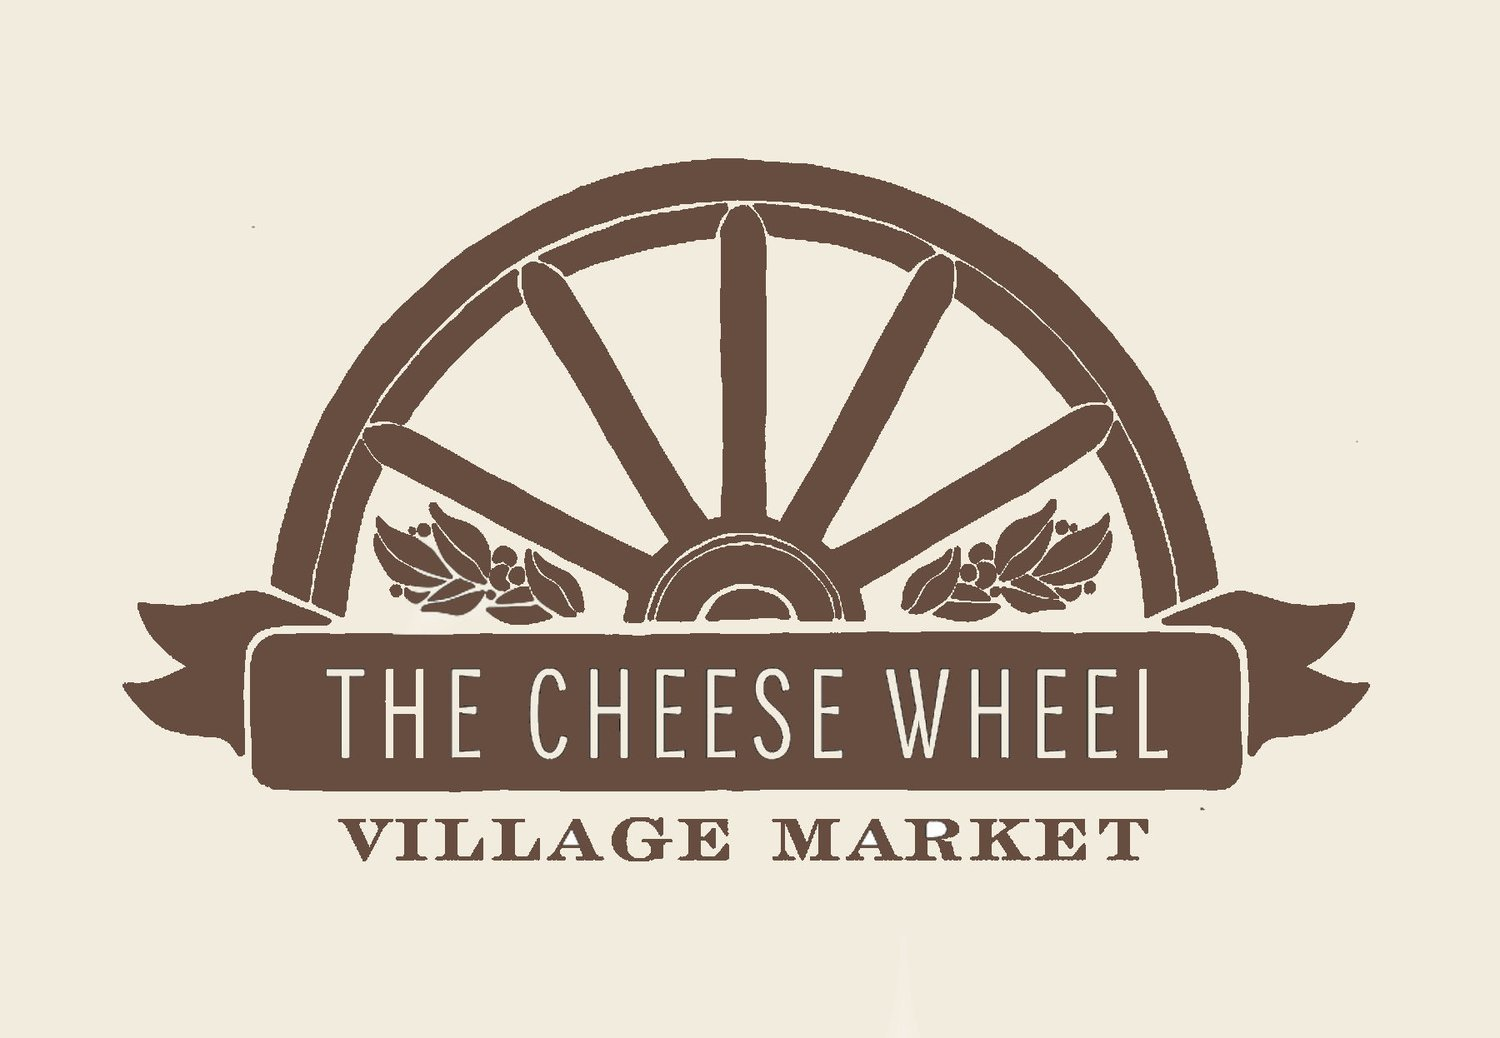 The Cheese Wheel Village Market